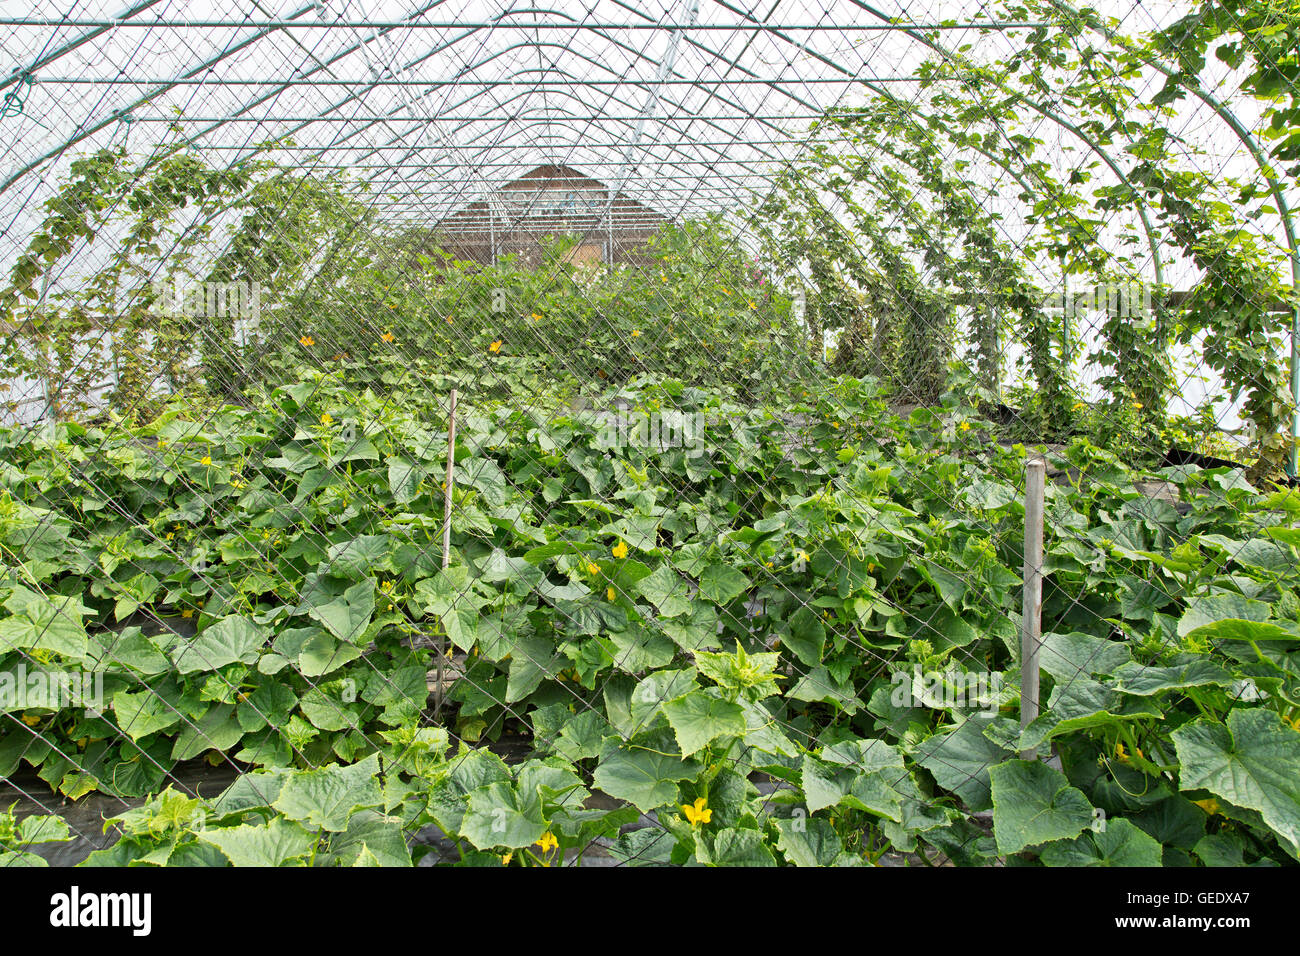 Tunnel, cucumber plants, hops climbing on both sides. - Stock Image